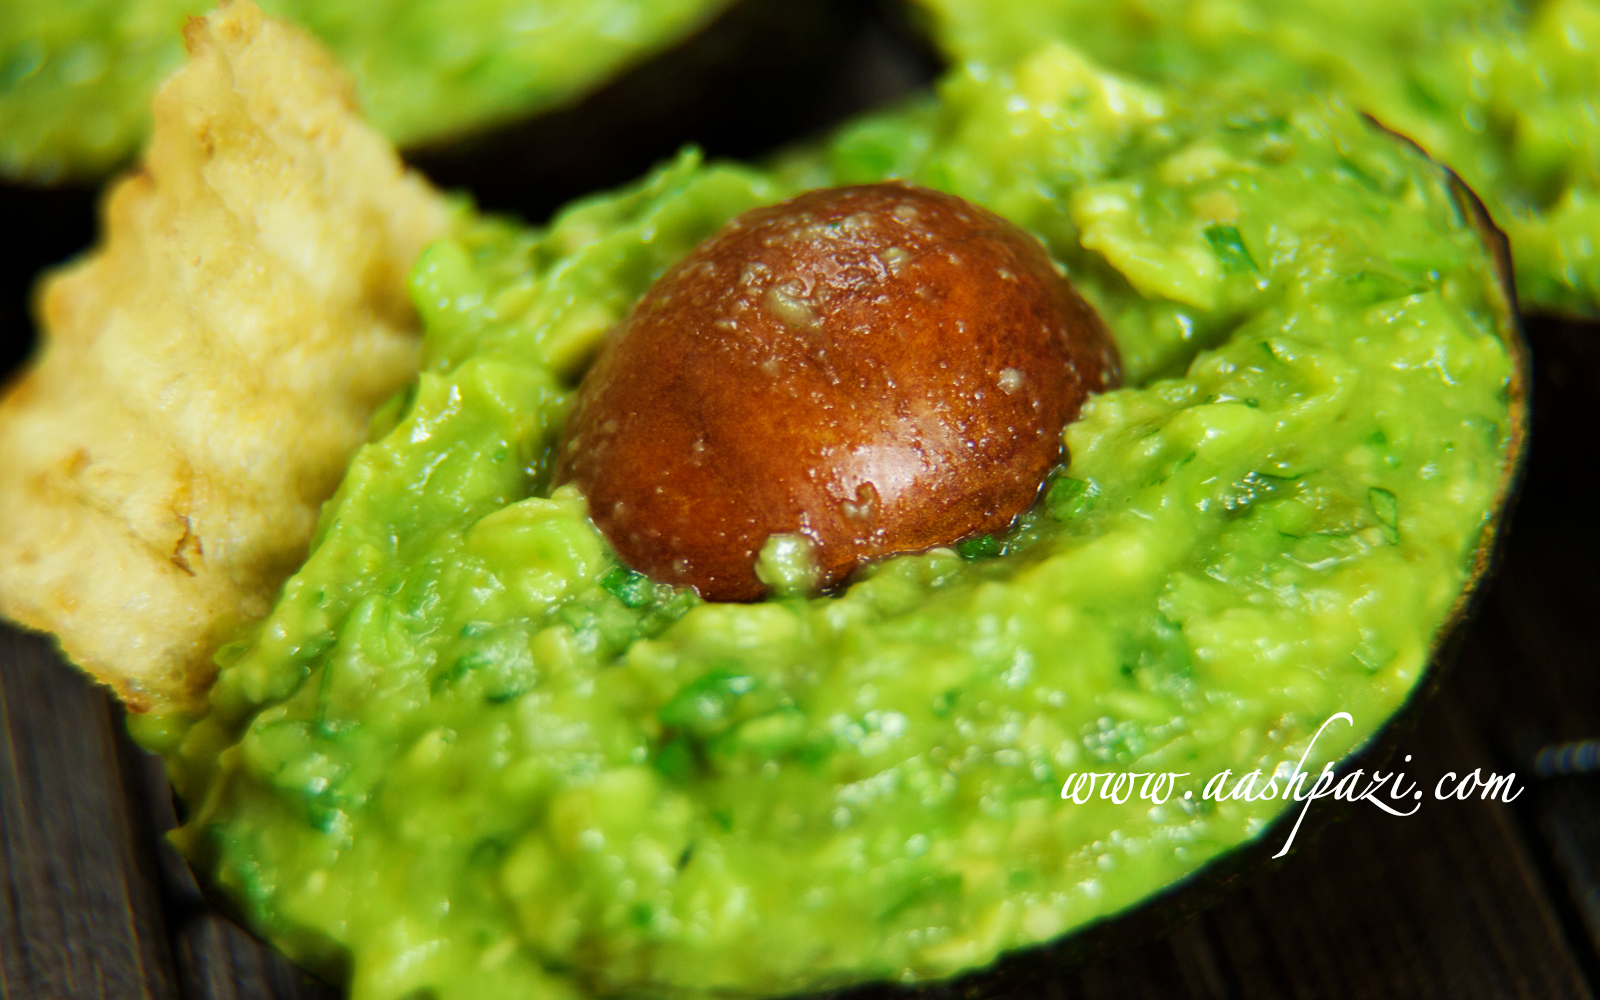 Avocado Dip Recipe | aashpazi